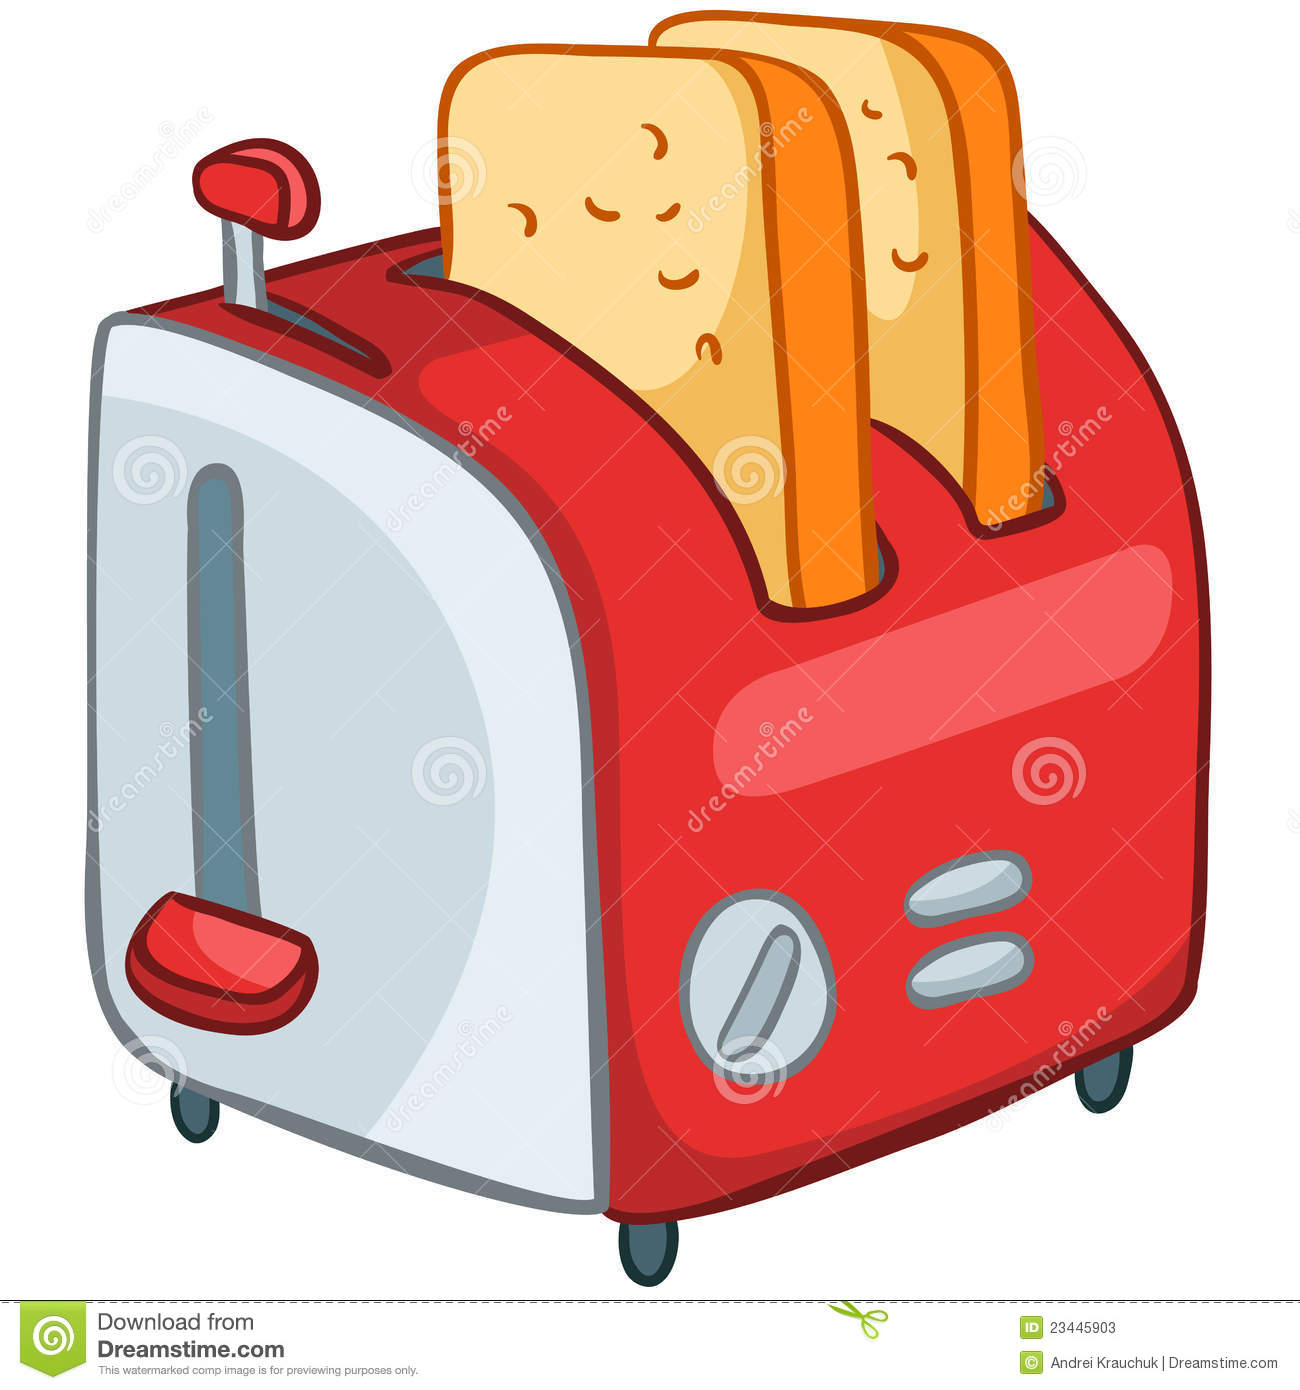 Cartoon Home Kitchen Toaster Stock Photos Image 23445903